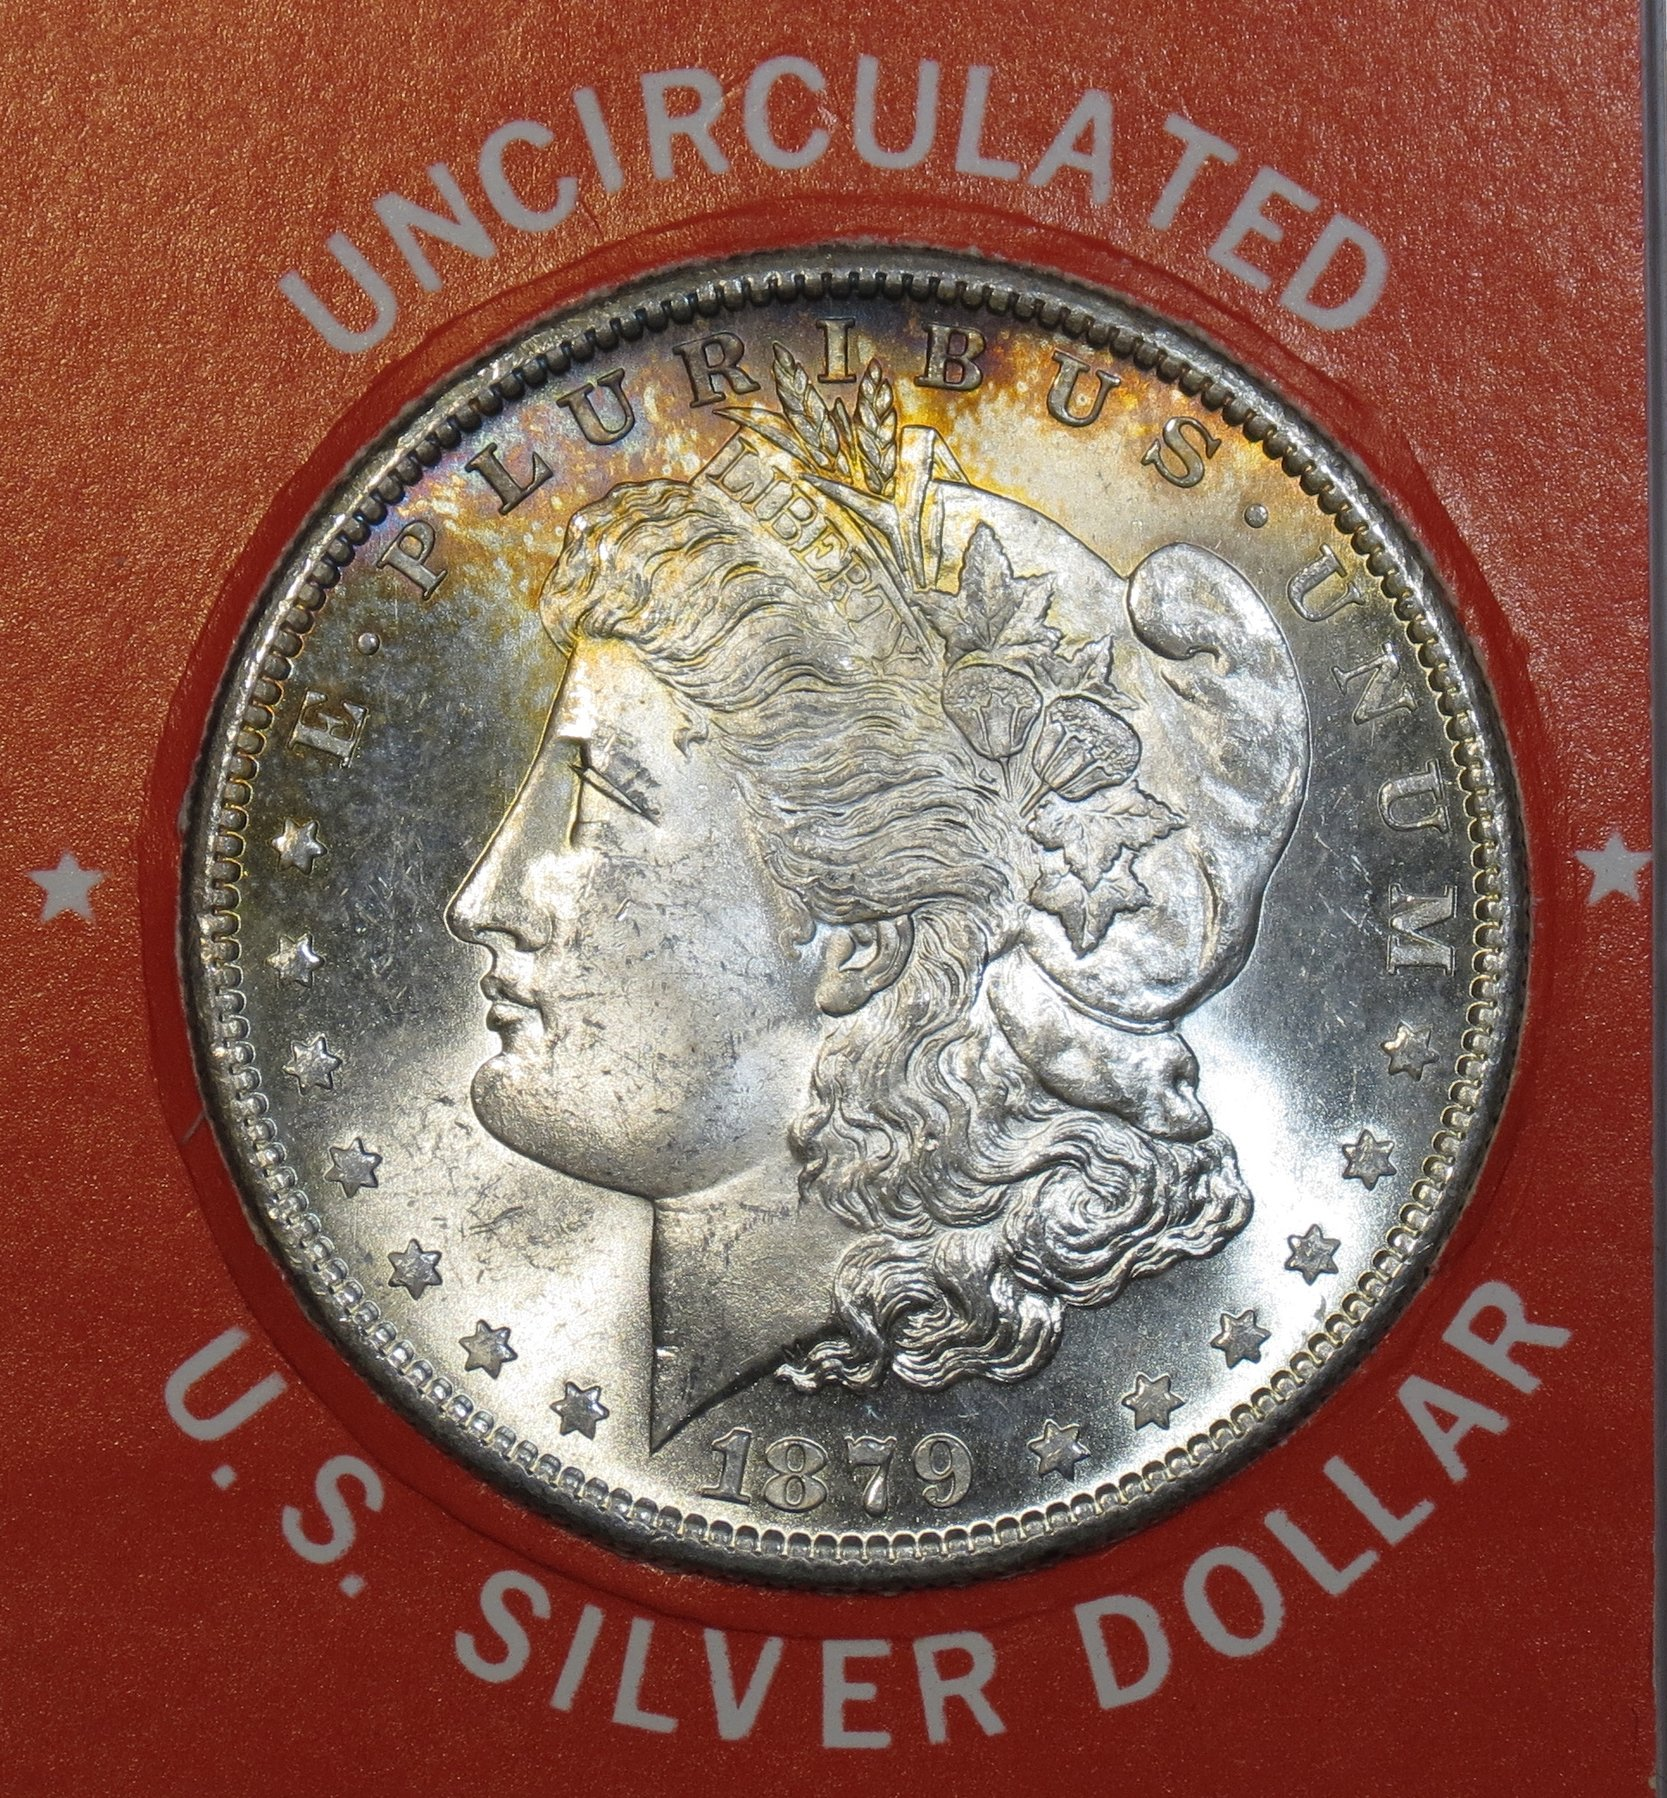 bellingham stamp and coin show